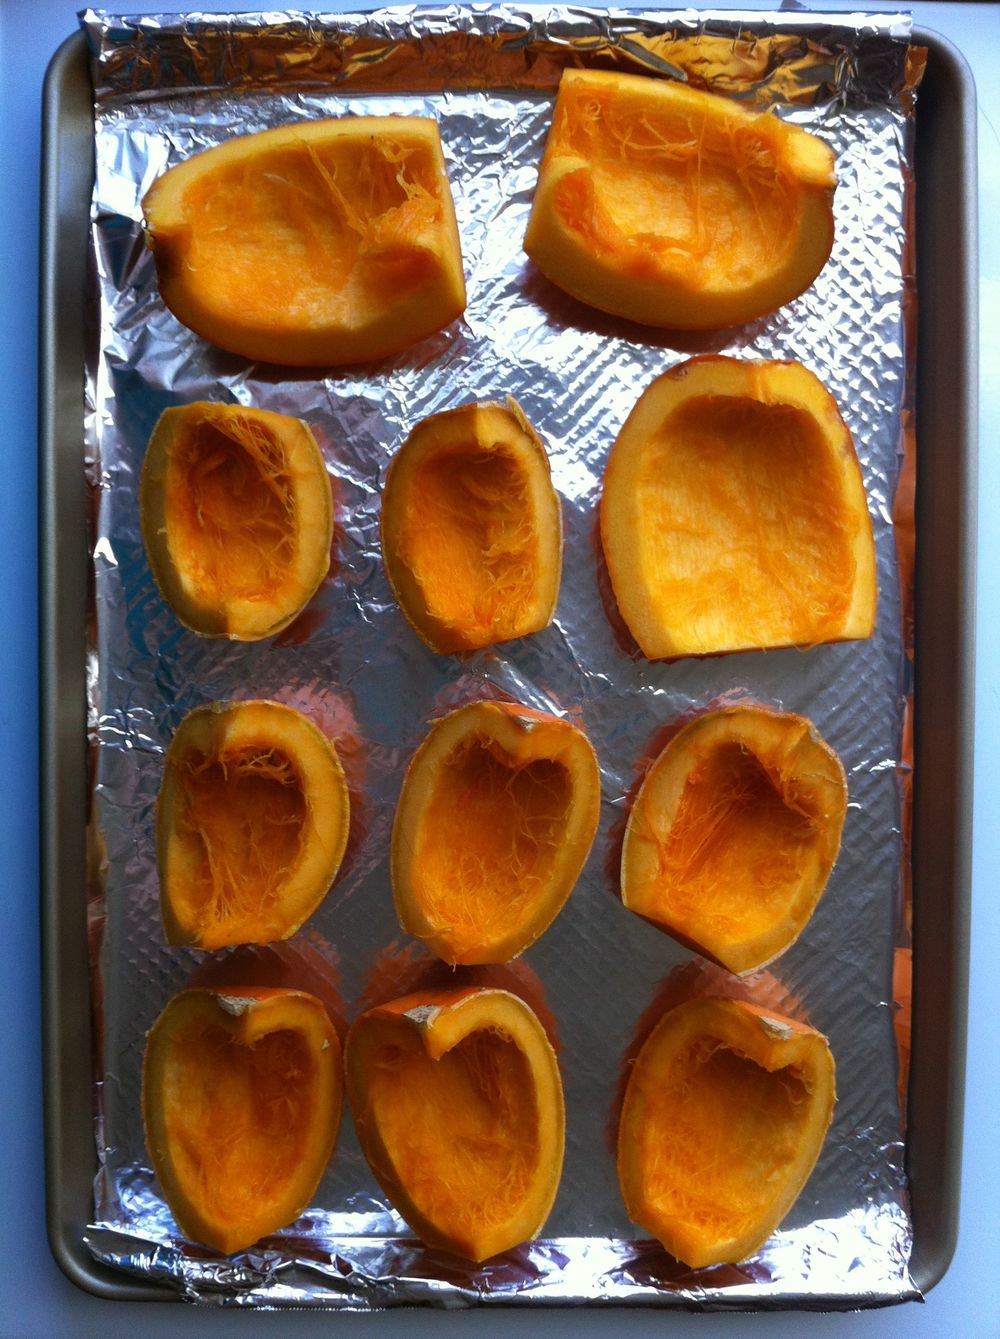 Pumpkin quarters ready for roasting